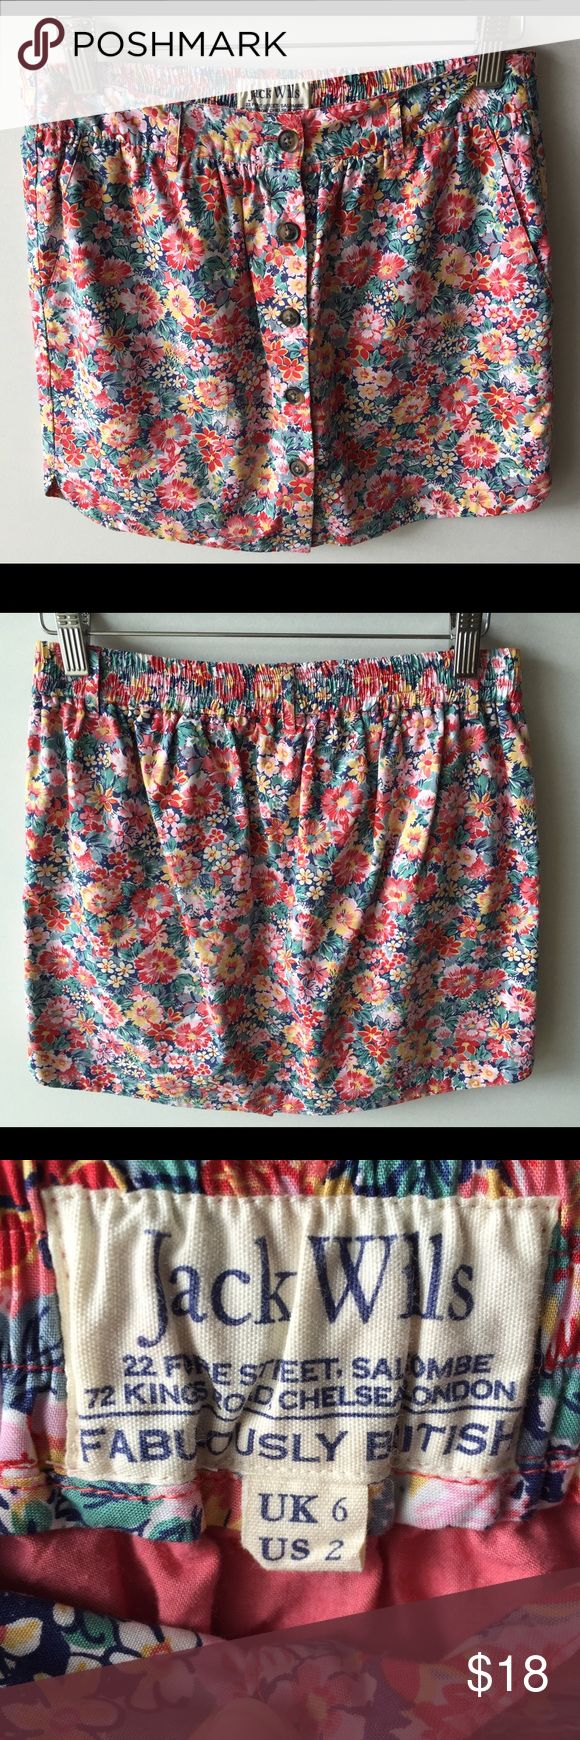 Jack Wills J. Crew Floral Button Brandsbury Skirt Adorable cotton mini skirt by Jack Wills for J. Crew. Button up front detail and overall floral pattern. This skirt is called the Brandsberry Skirt and the color is called blossom floral. Originally retailed for $79.50. Women's US size 2 or UK size 6. Great condition. Jack Wills Skirts Mini